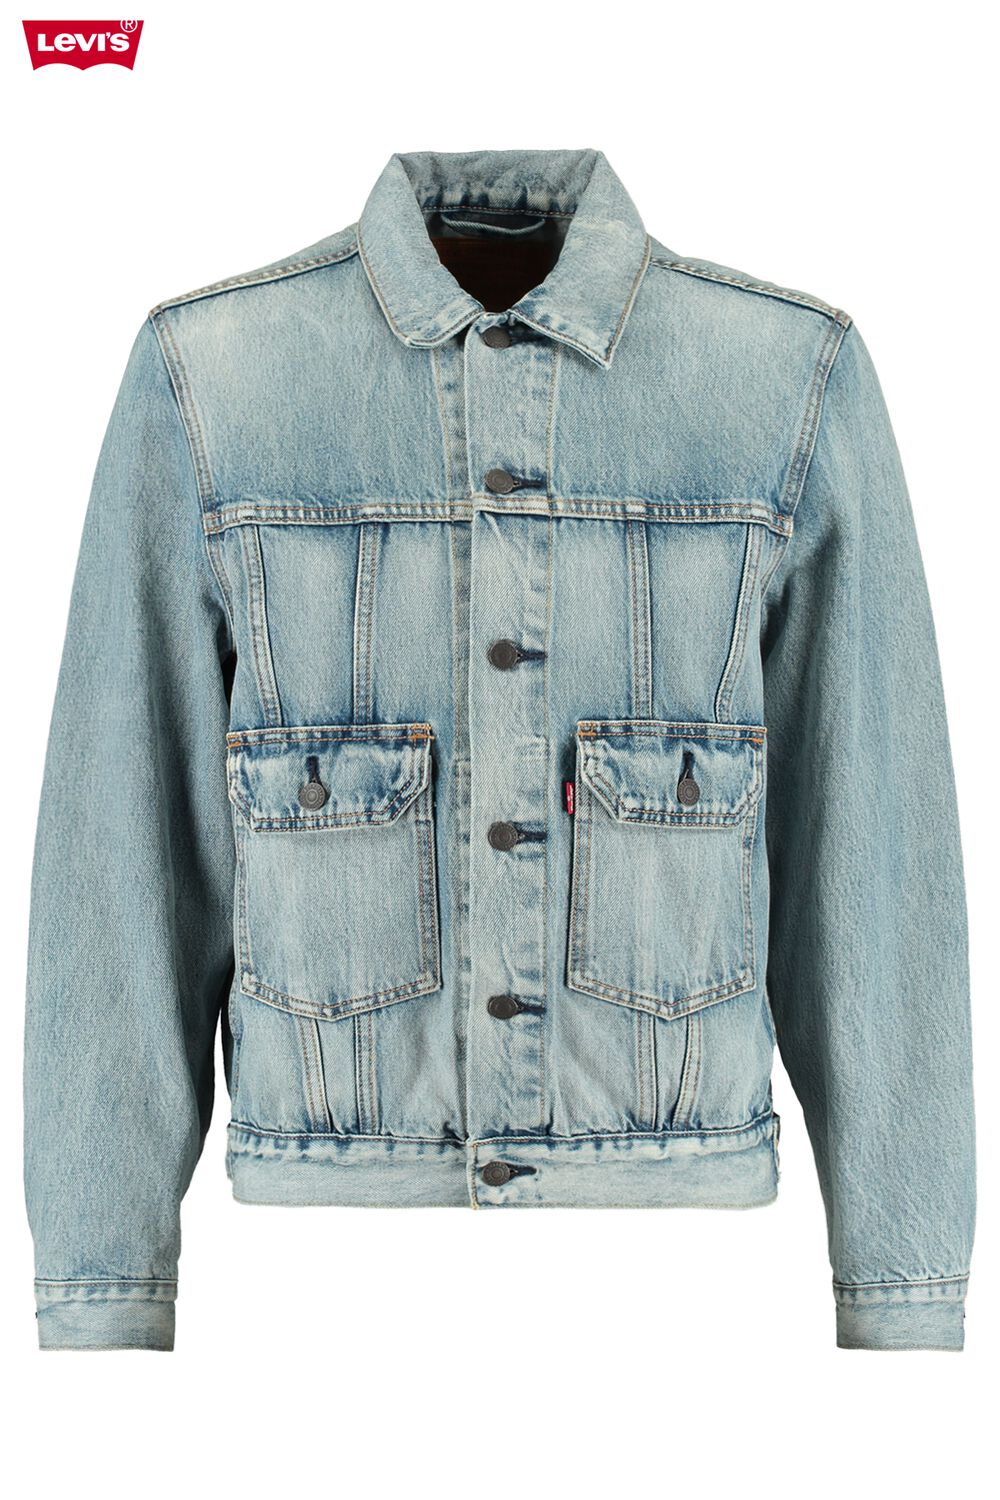 Levi's Heren Trucker Jacket Iconic Trucker Blauw